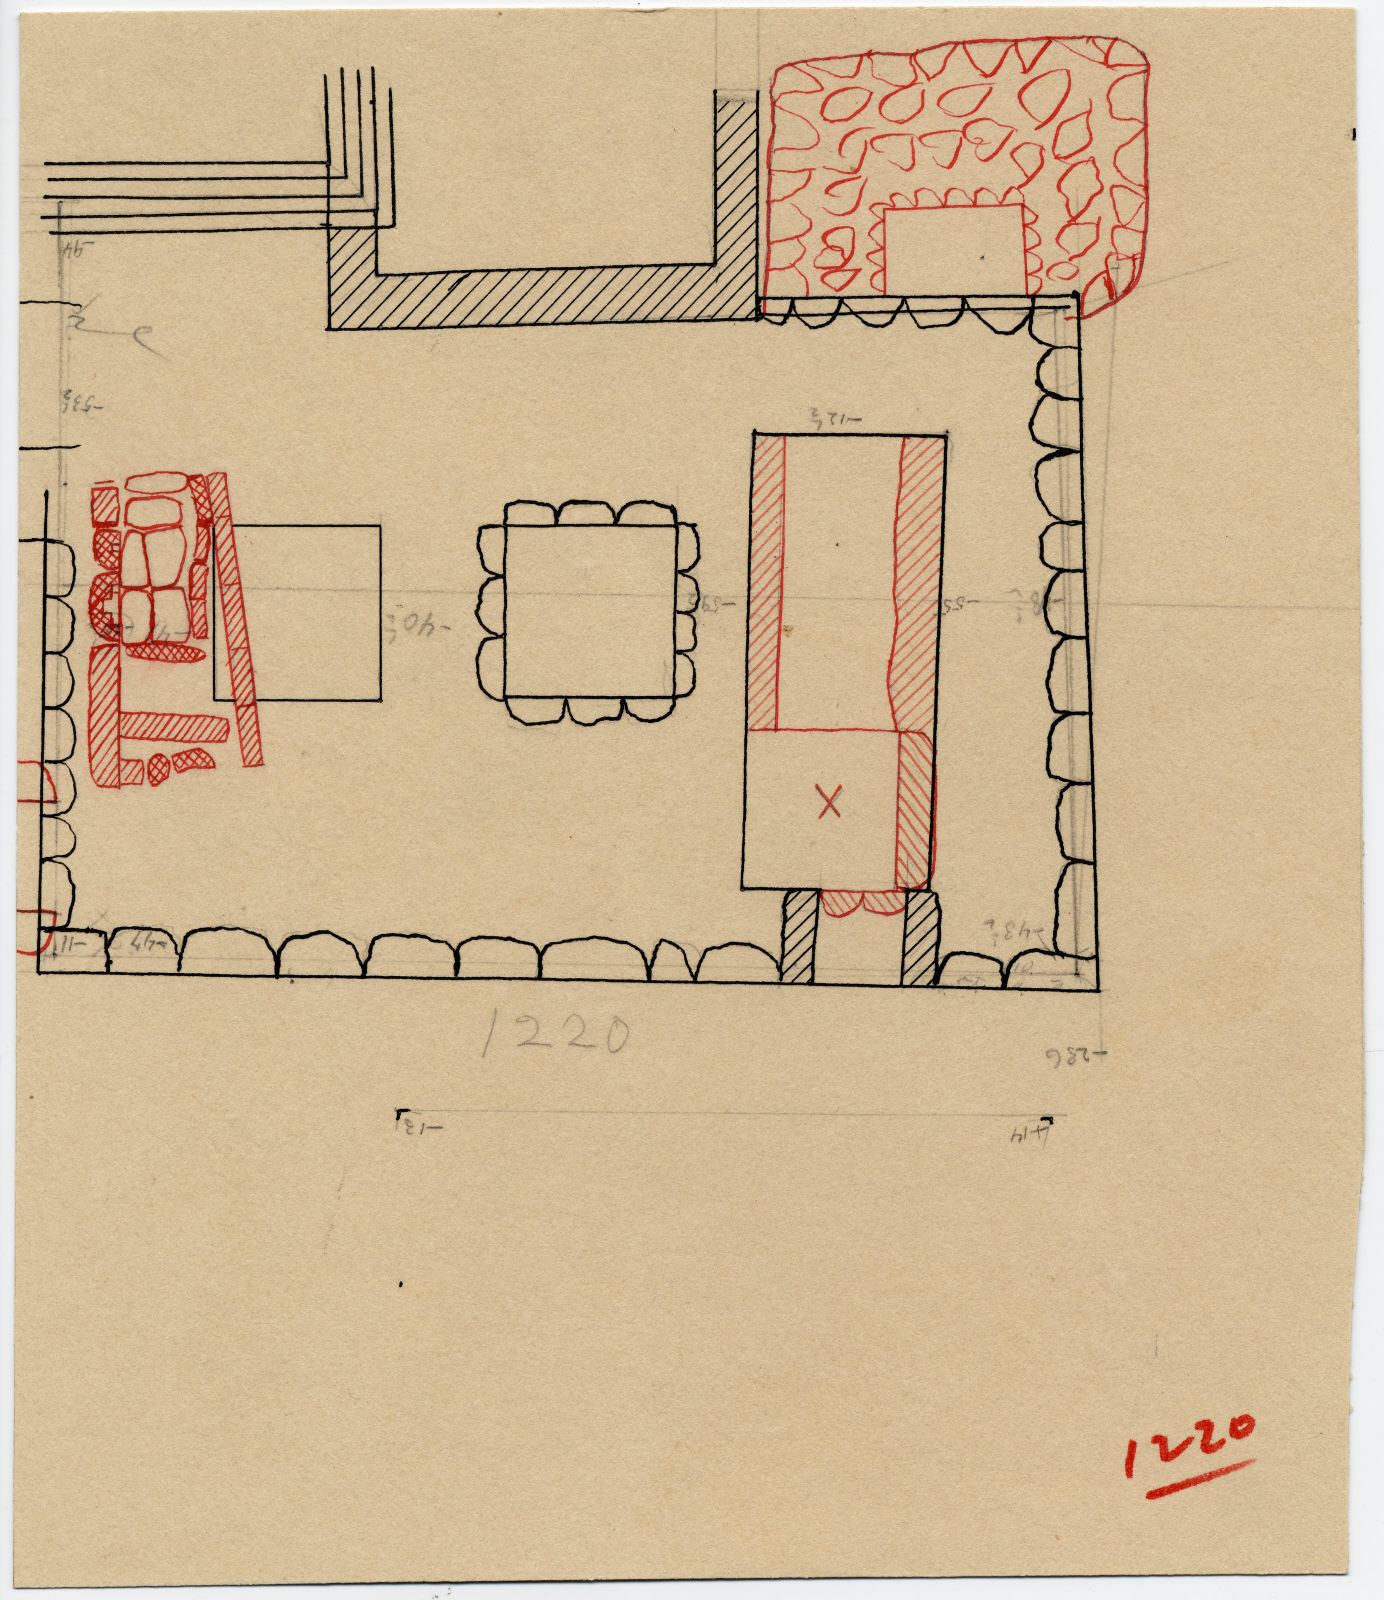 Maps and plans: Plan of G 1220